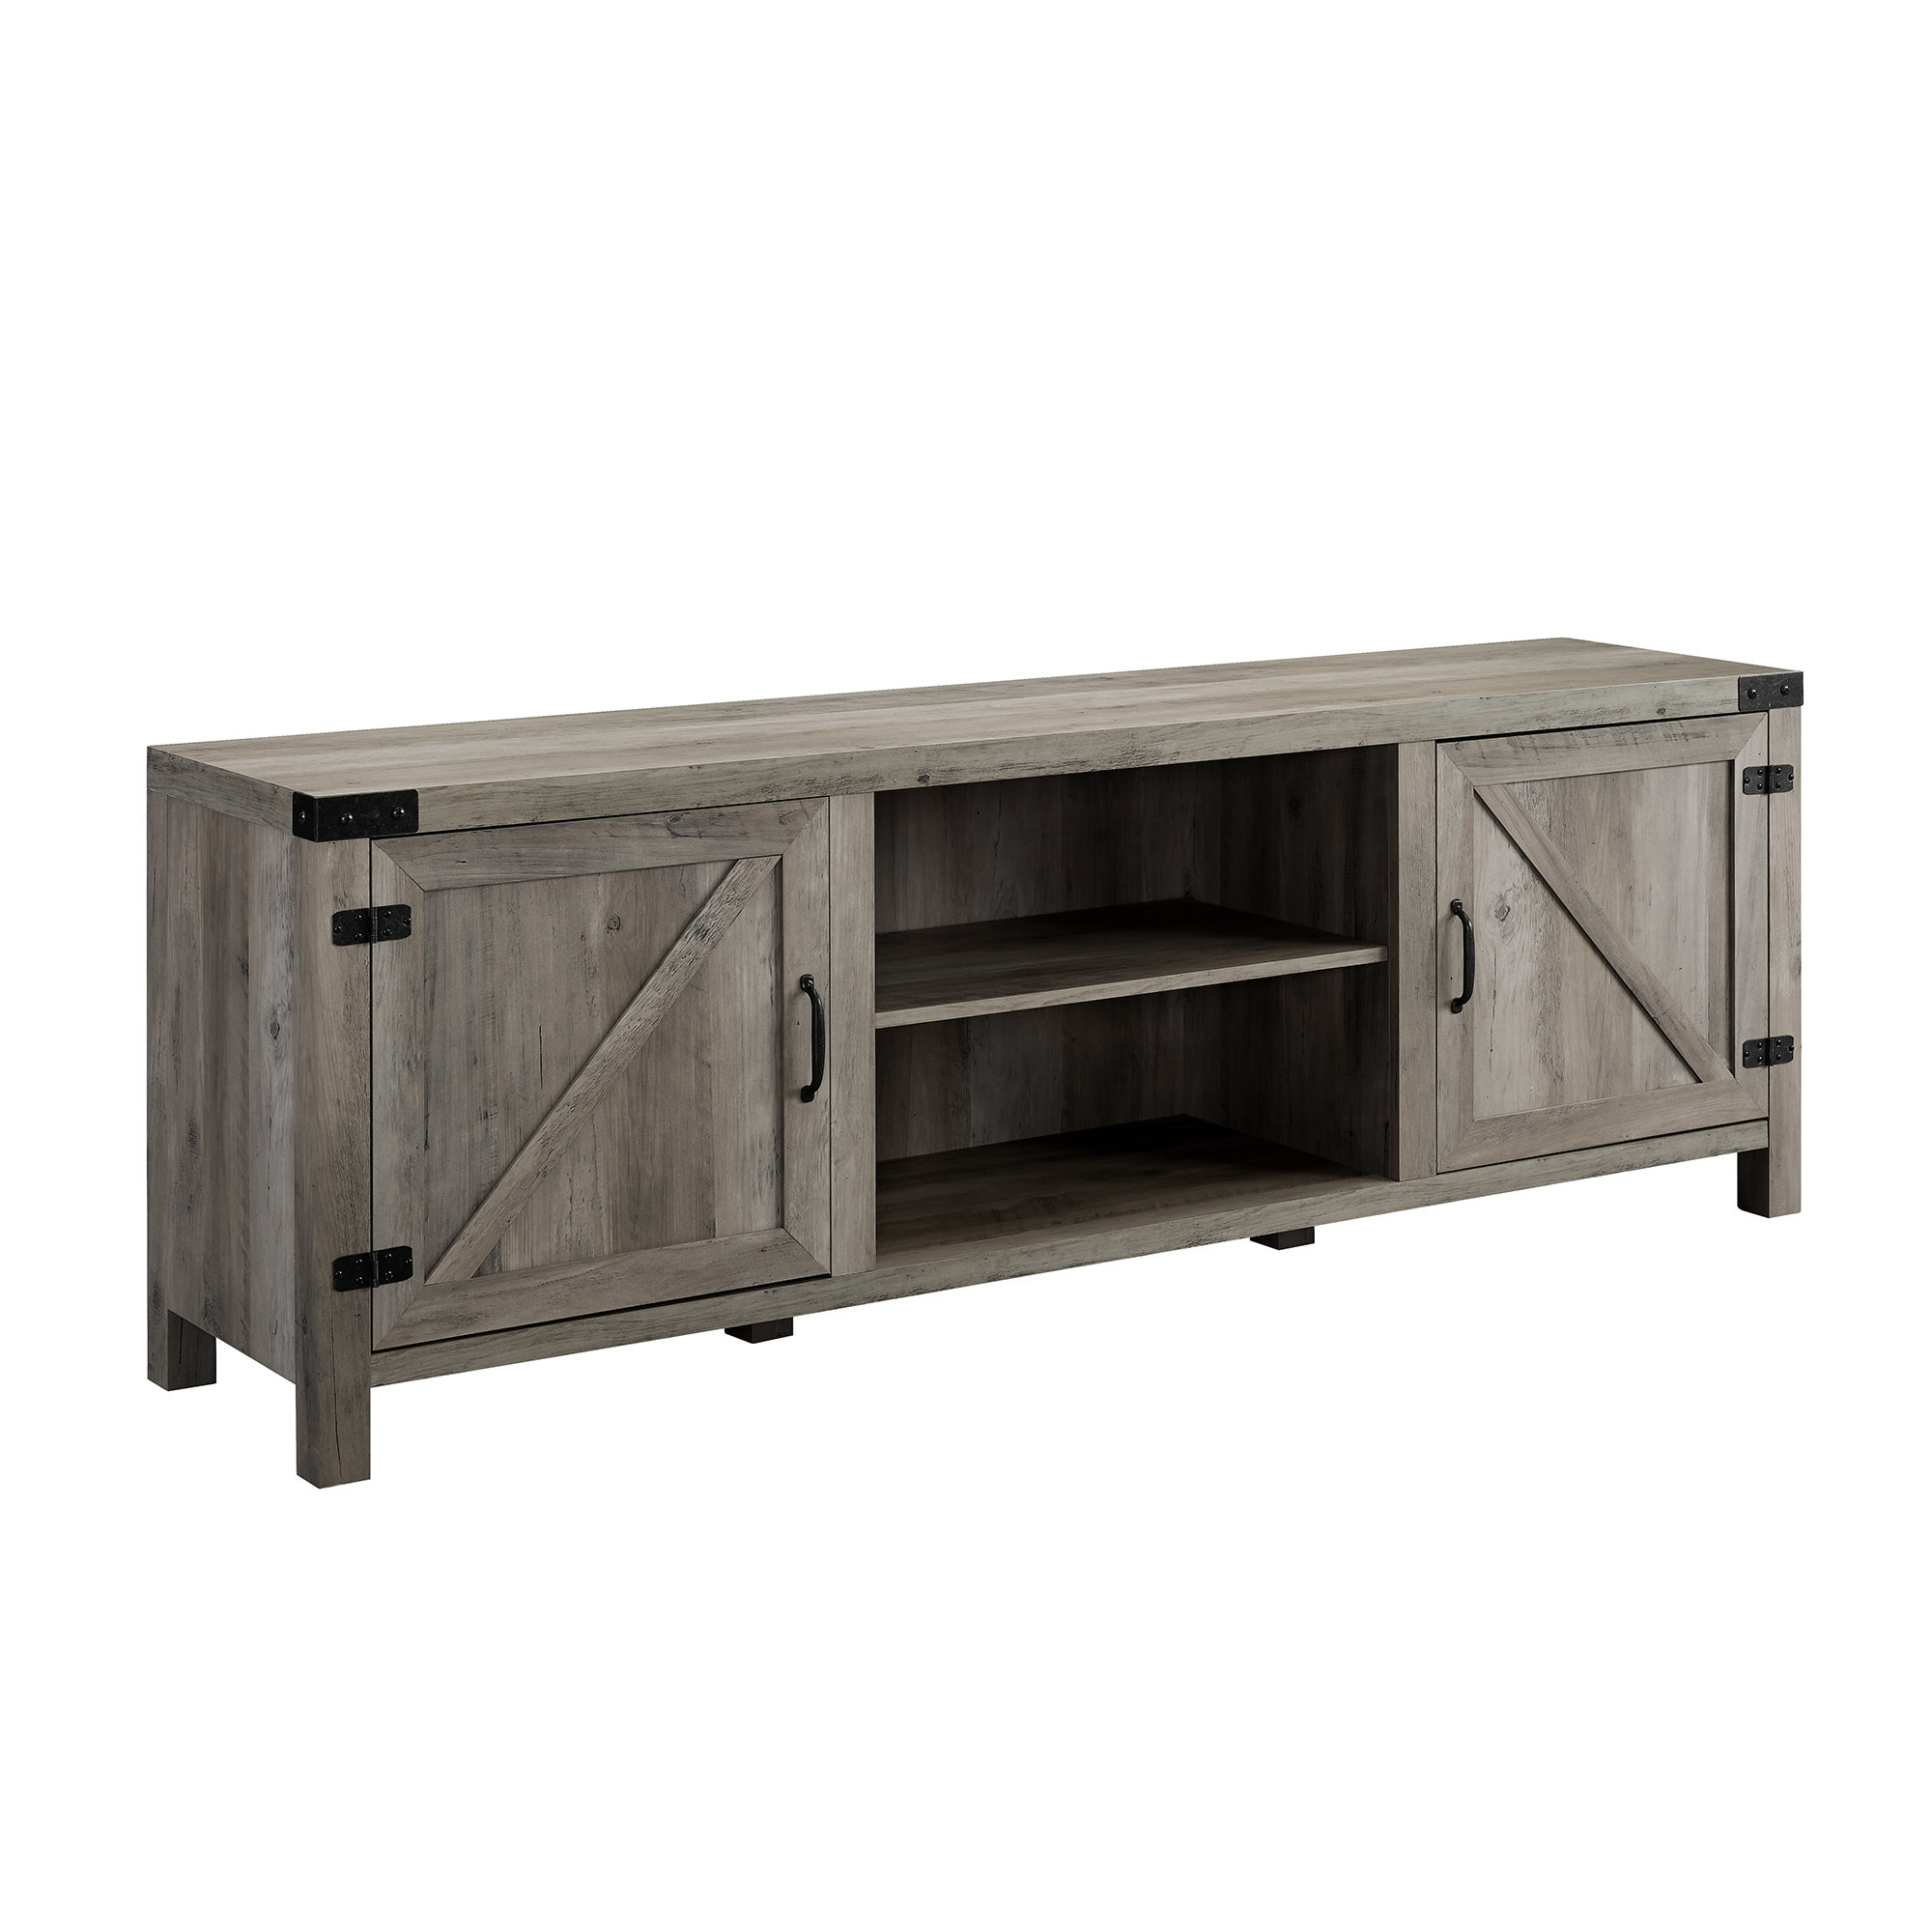 Steinhatchee Reclaimed Pine 4 Door Sideboards Within Widely Used Reclaimed Wood Media Cabinet (View 17 of 20)